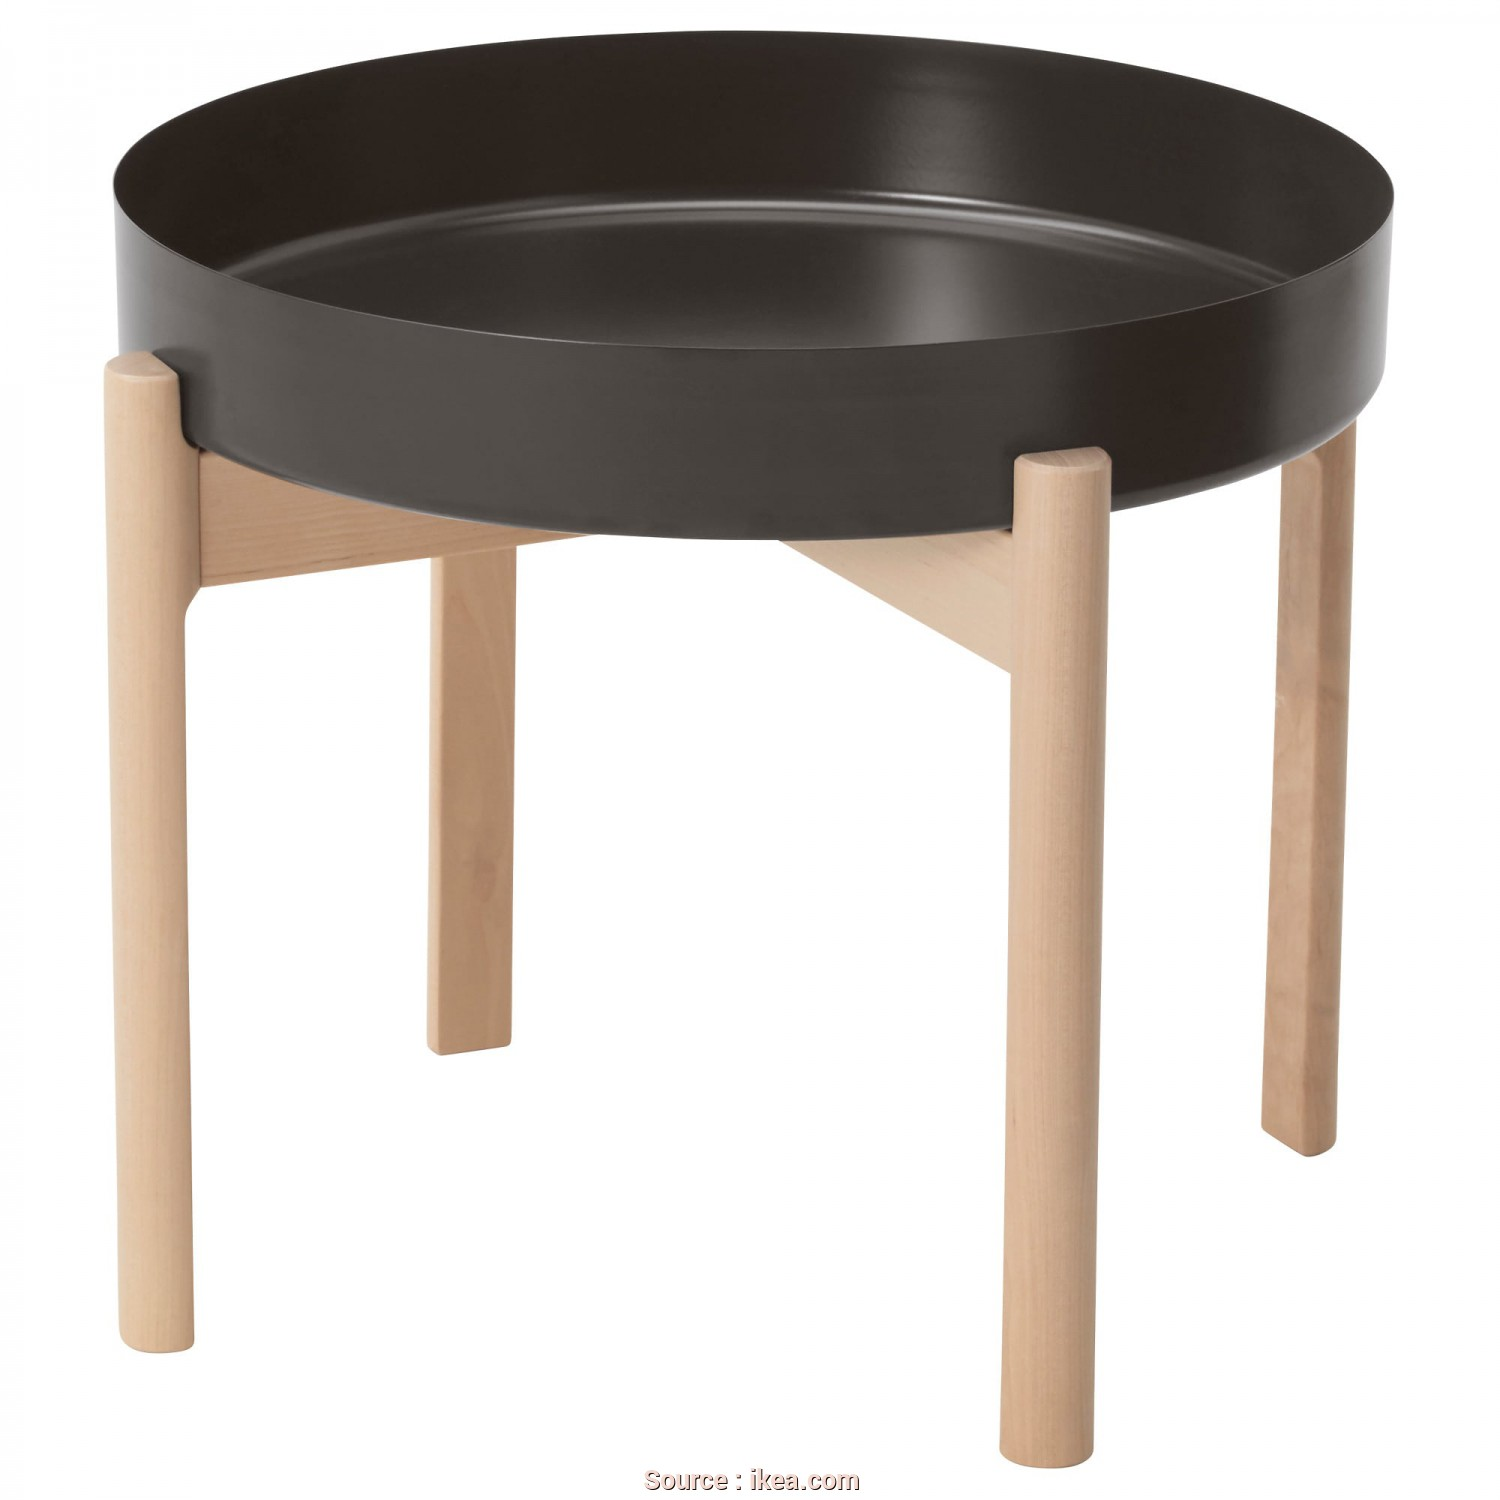 Ikea Divano Ypperlig, Incredibile IKEA YPPERLIG Coffee Table Solid Birch Is A Hard-Wearing Natural Material